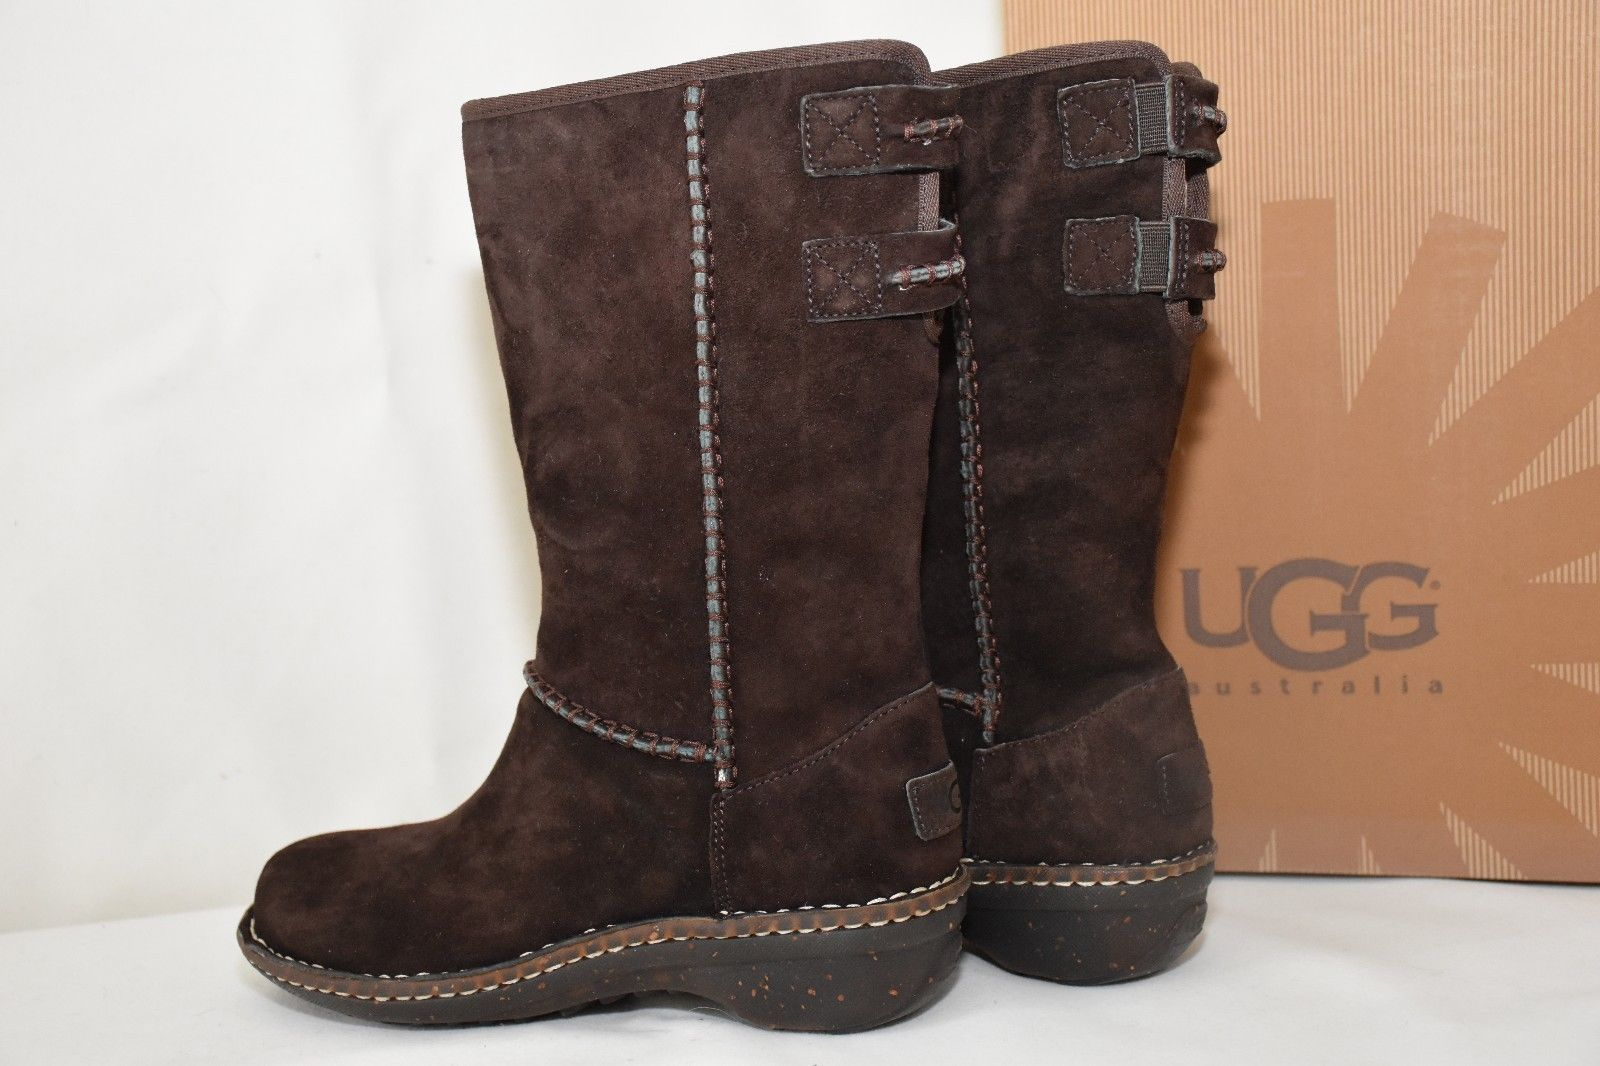 09c94786109 UGG Australia 'Haywell' Boots Suede and 50 similar items